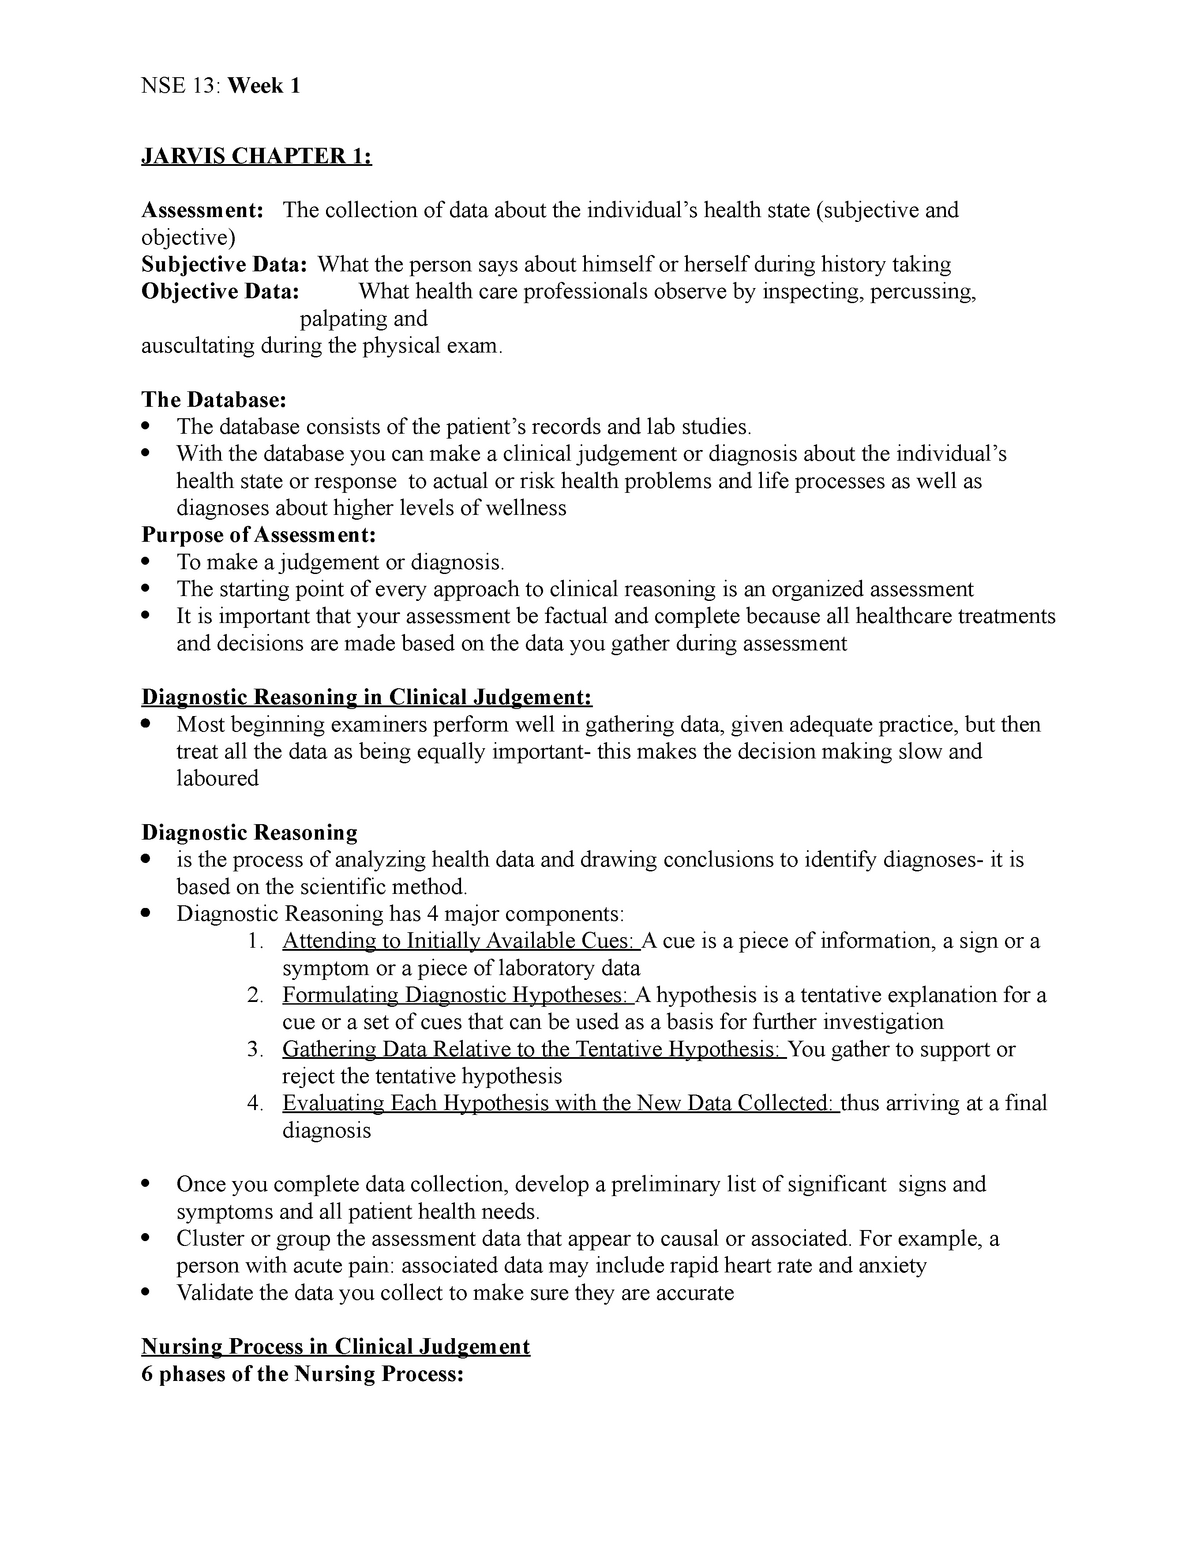 Nursing Assesment - Lecture notes - Chapter 1 - NSE 13